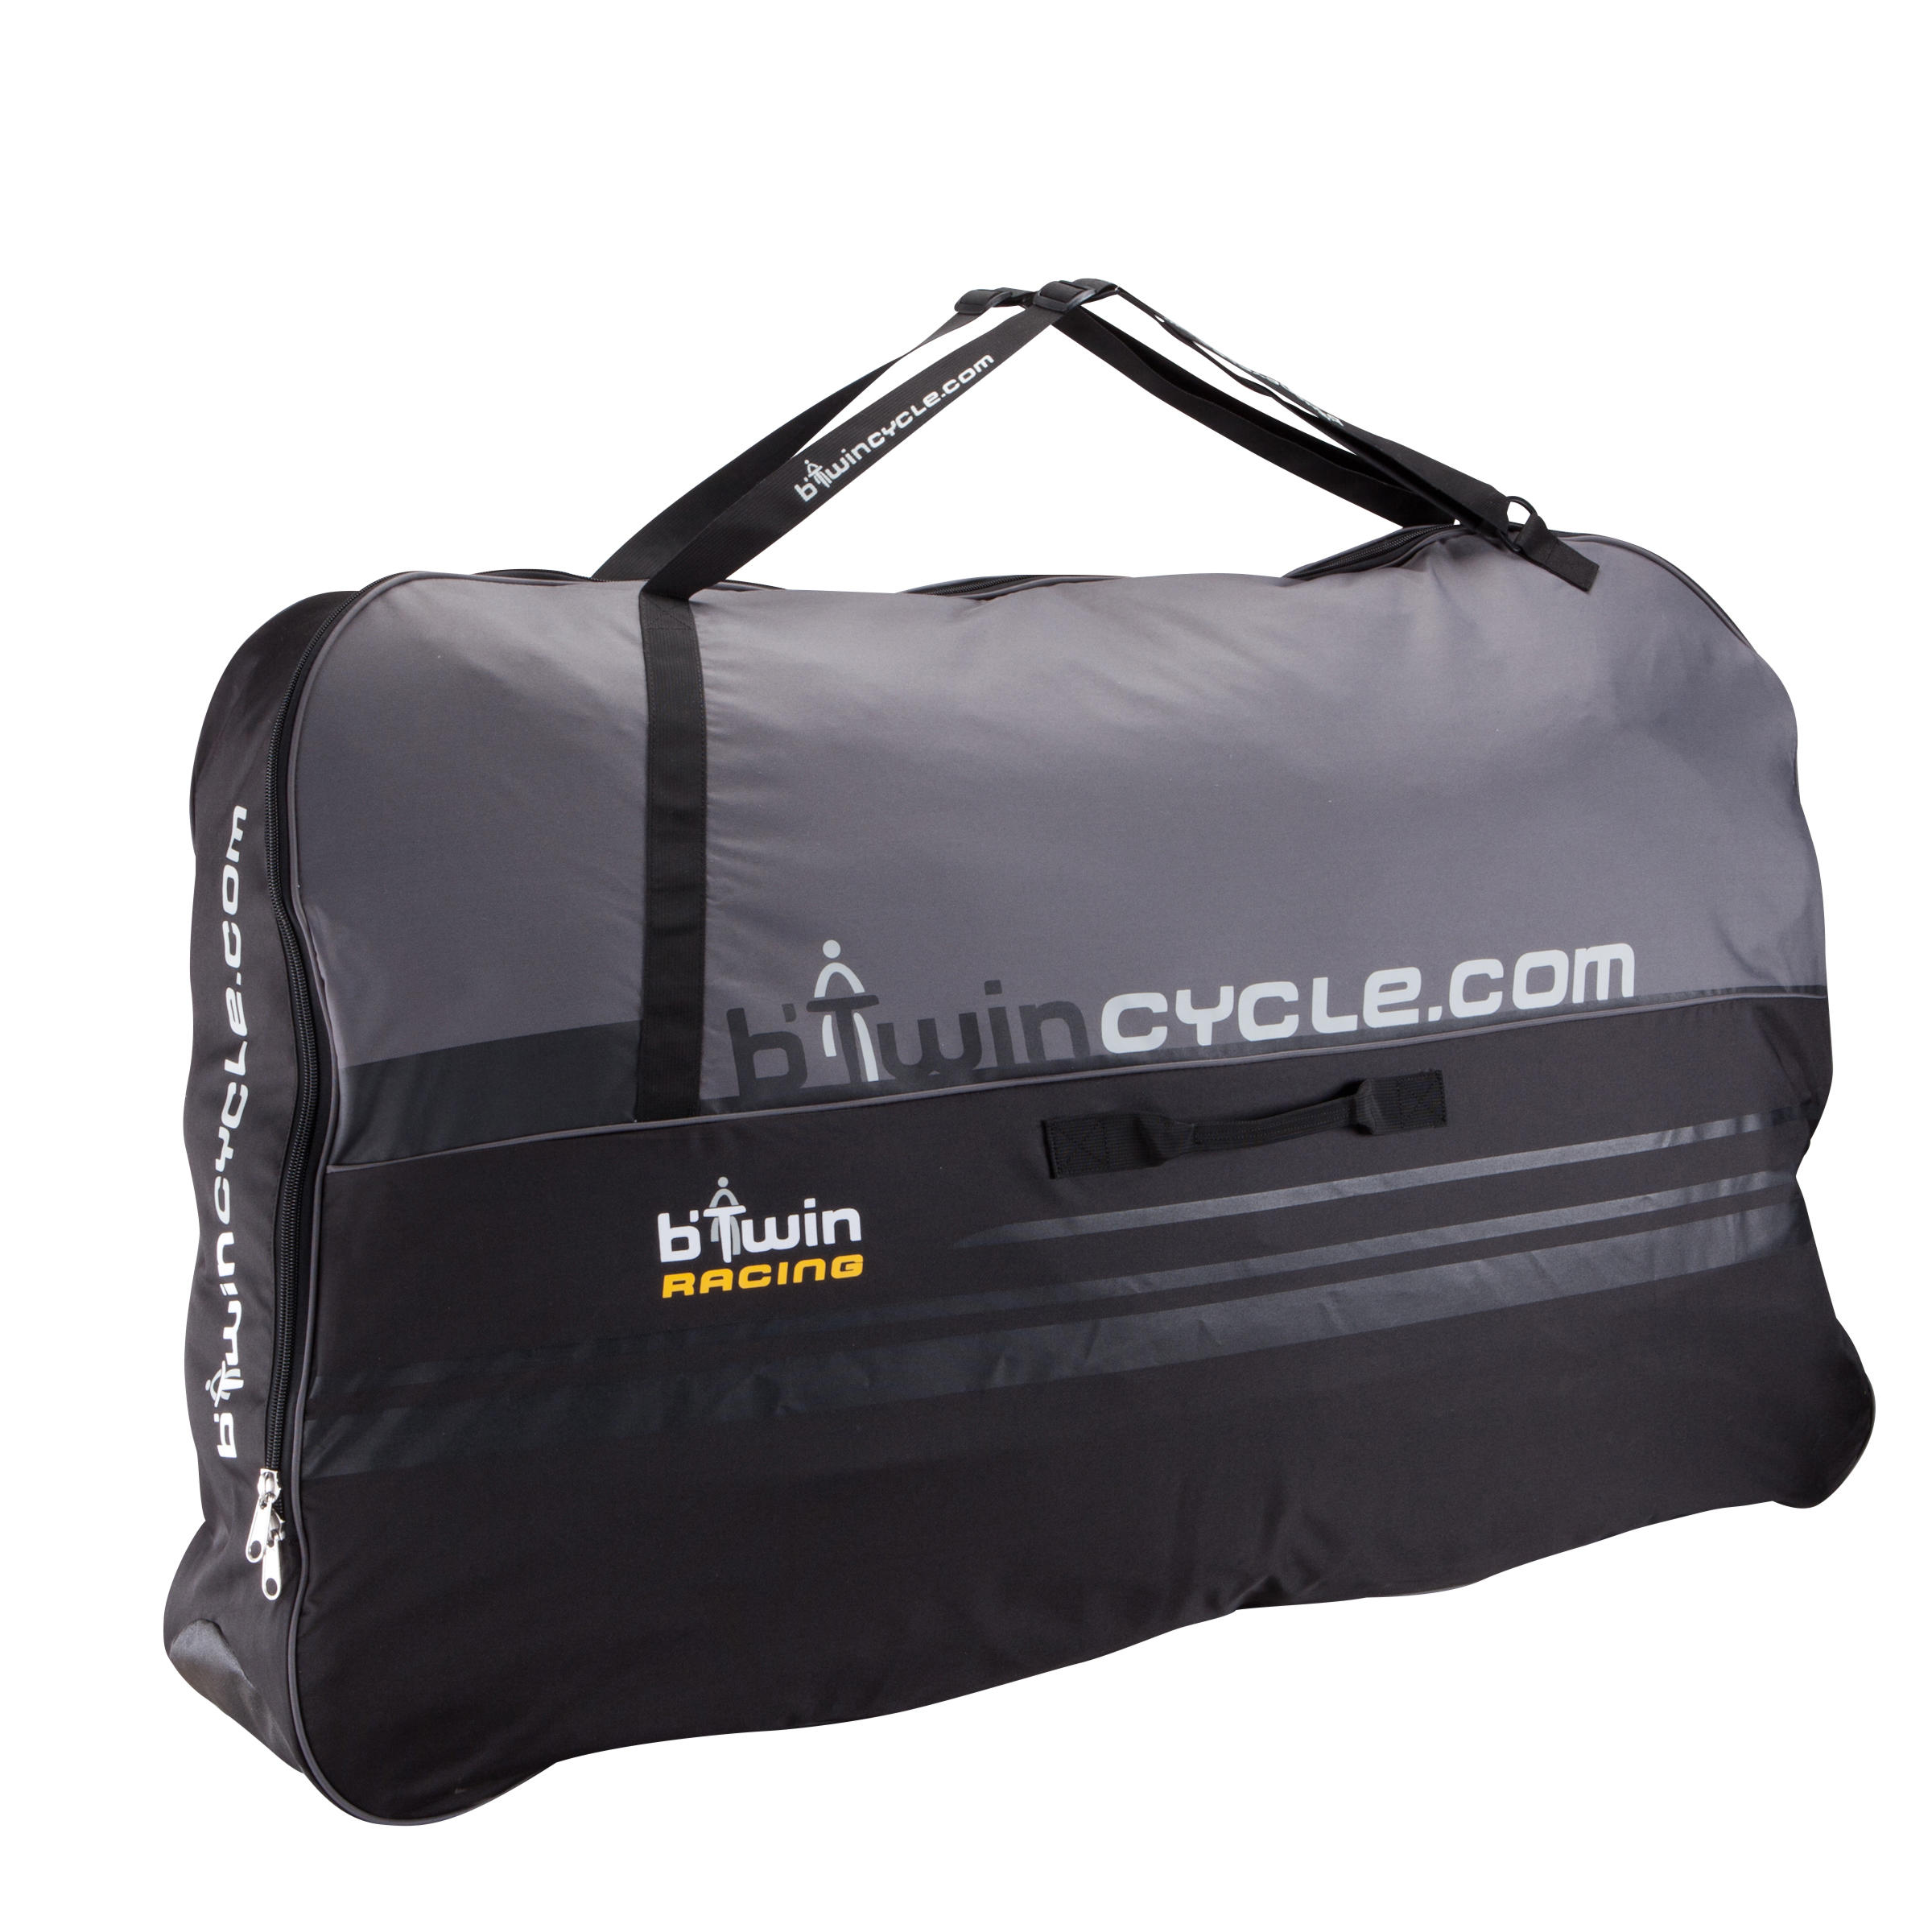 1-Bike Travel Bag